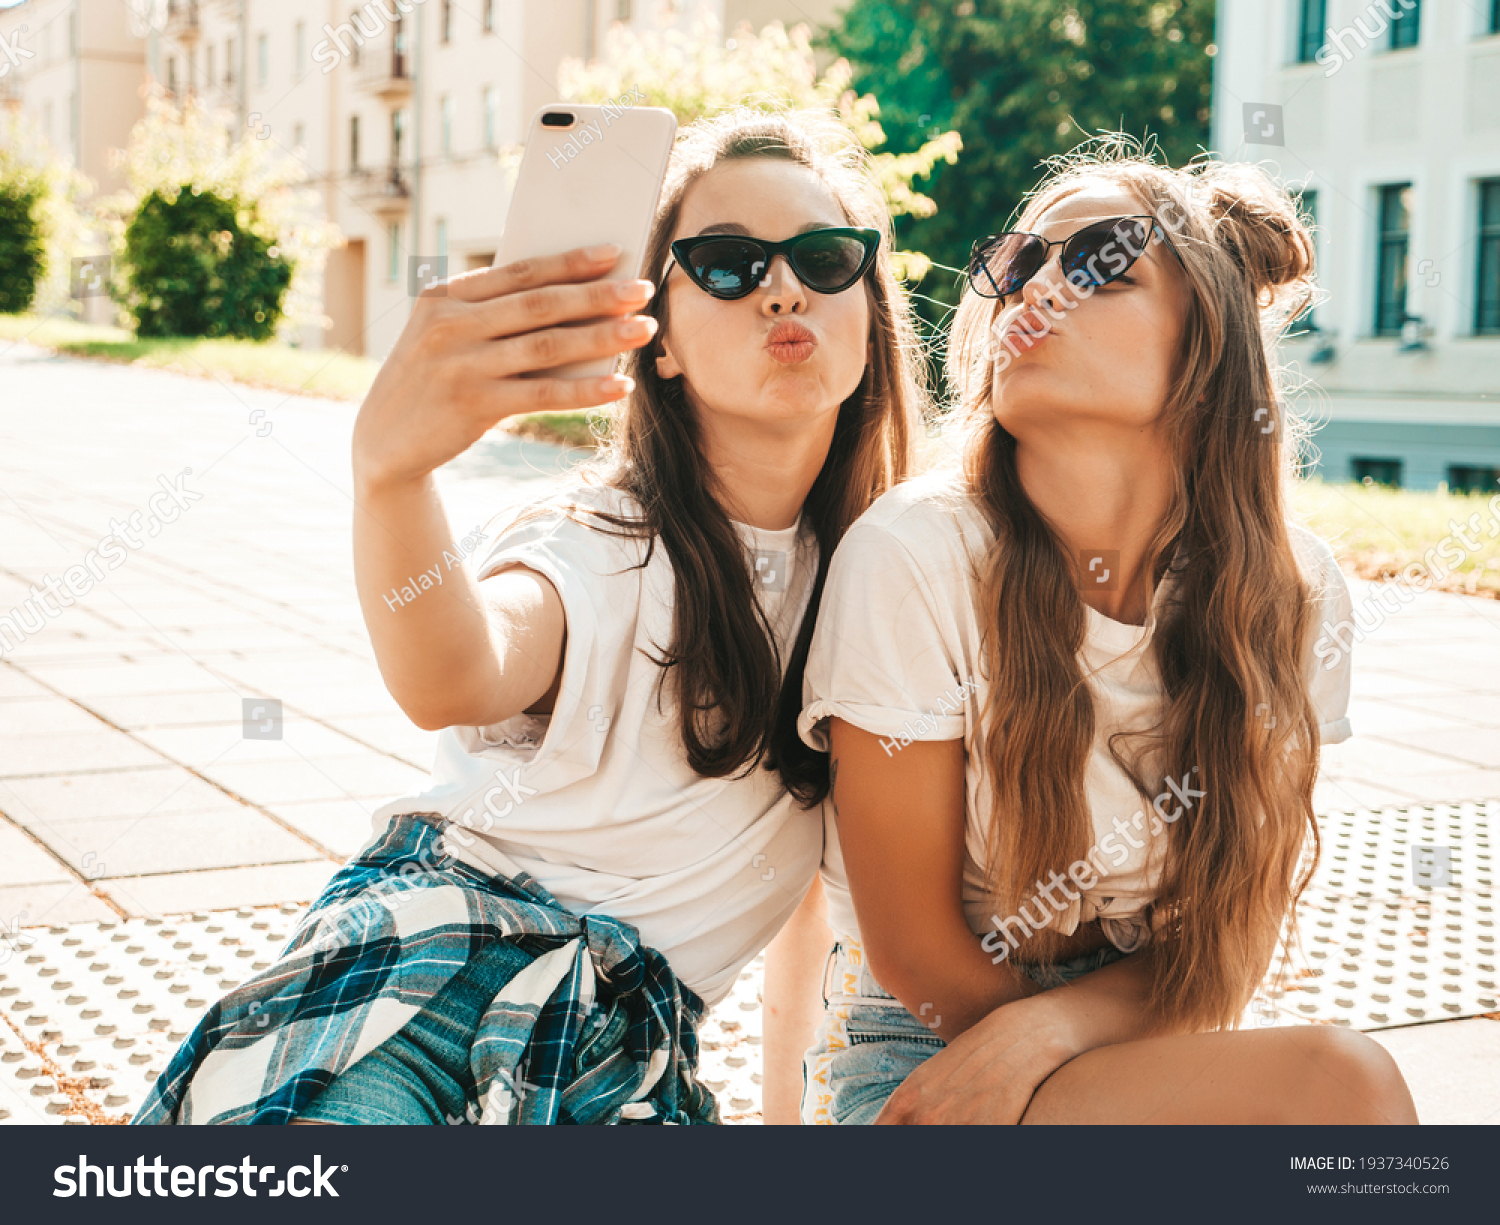 Portrait of two young beautiful smiling hipster women in trendy summer white t-shirt clothes.Sexy carefree women posing on street background. Positive models having fun, hugging and taking selfie #1937340526